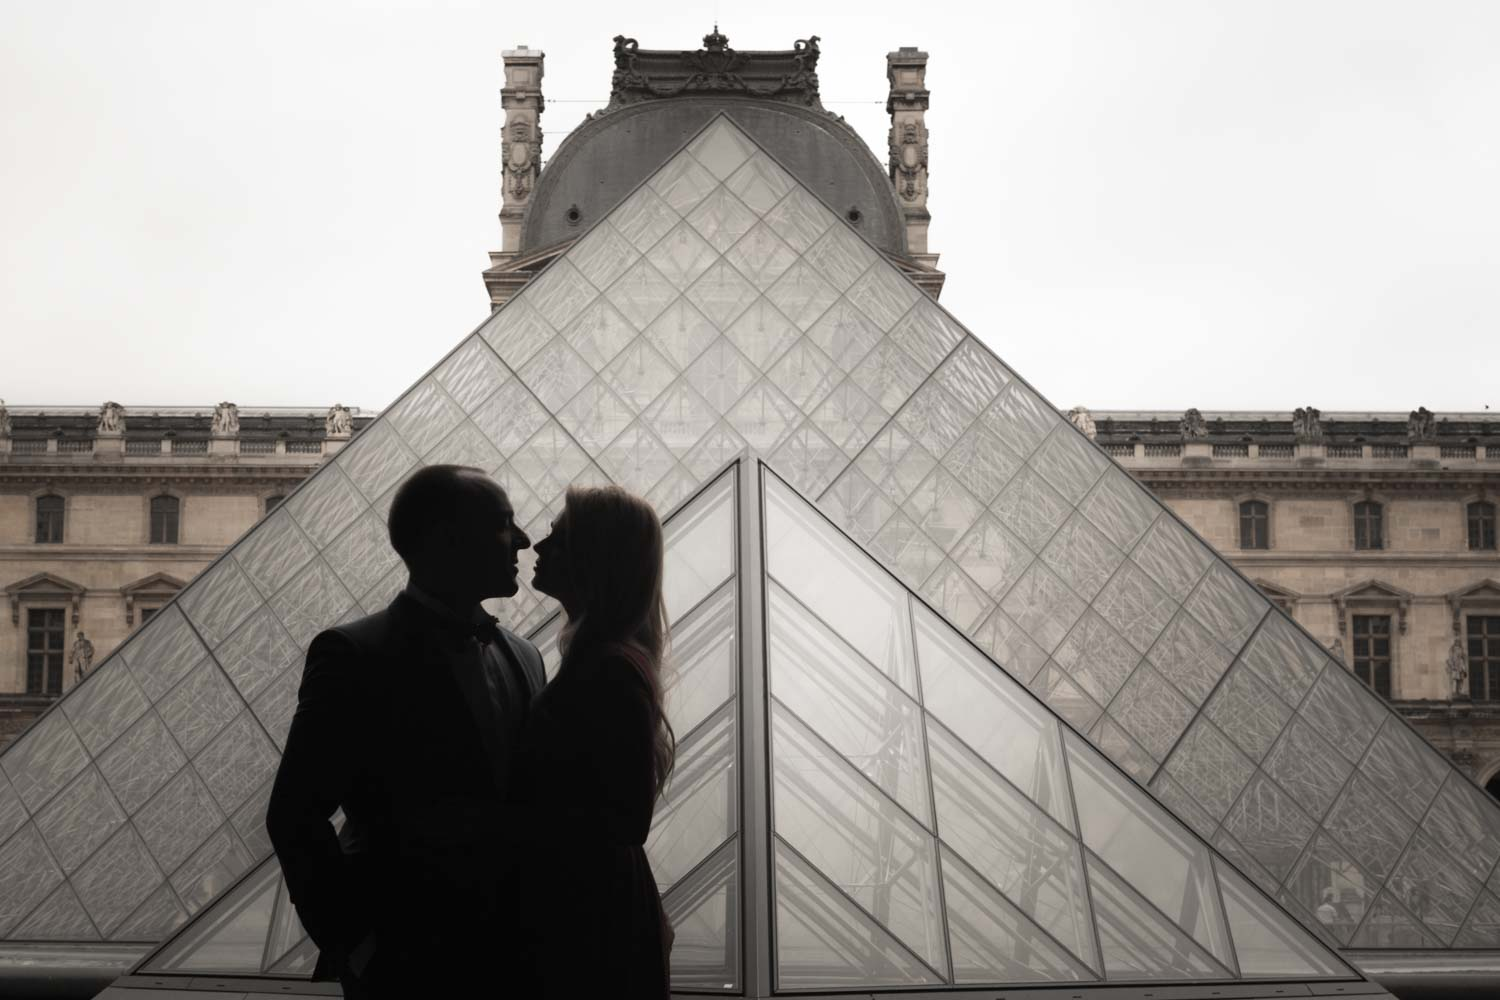 silhouette kiss at le louvre